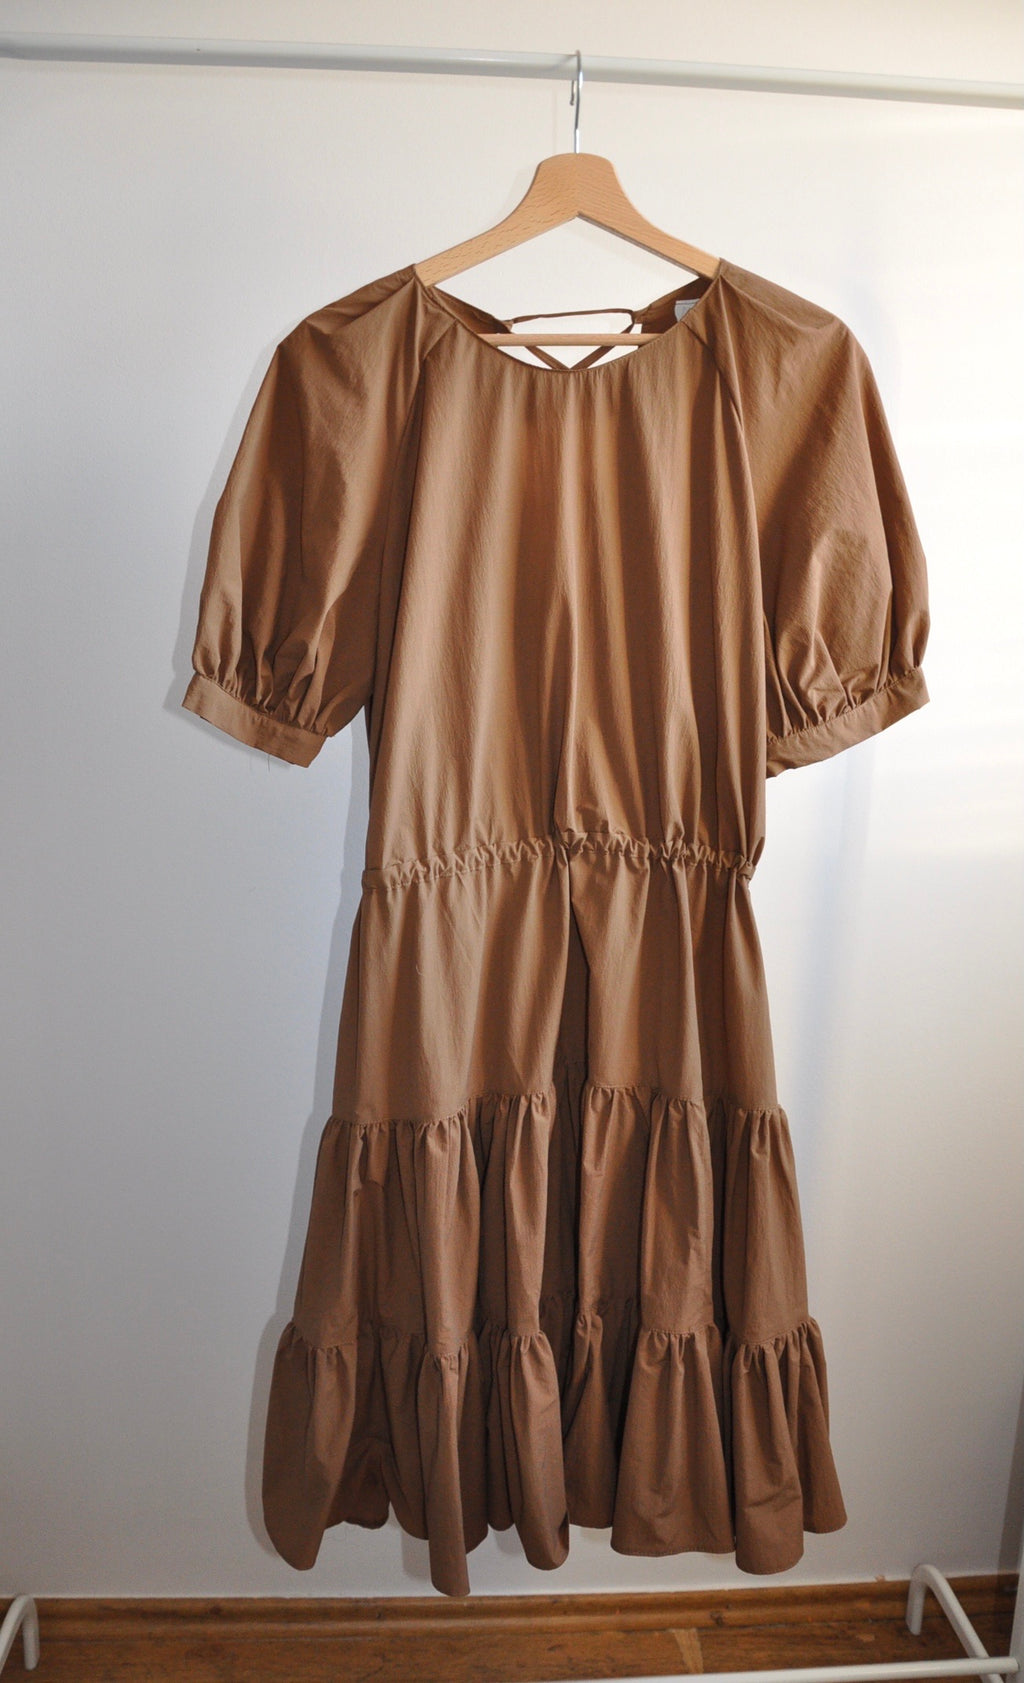 Ruffle dress chocolate in 2 sizes XS-L / Upcycled by Nimfa